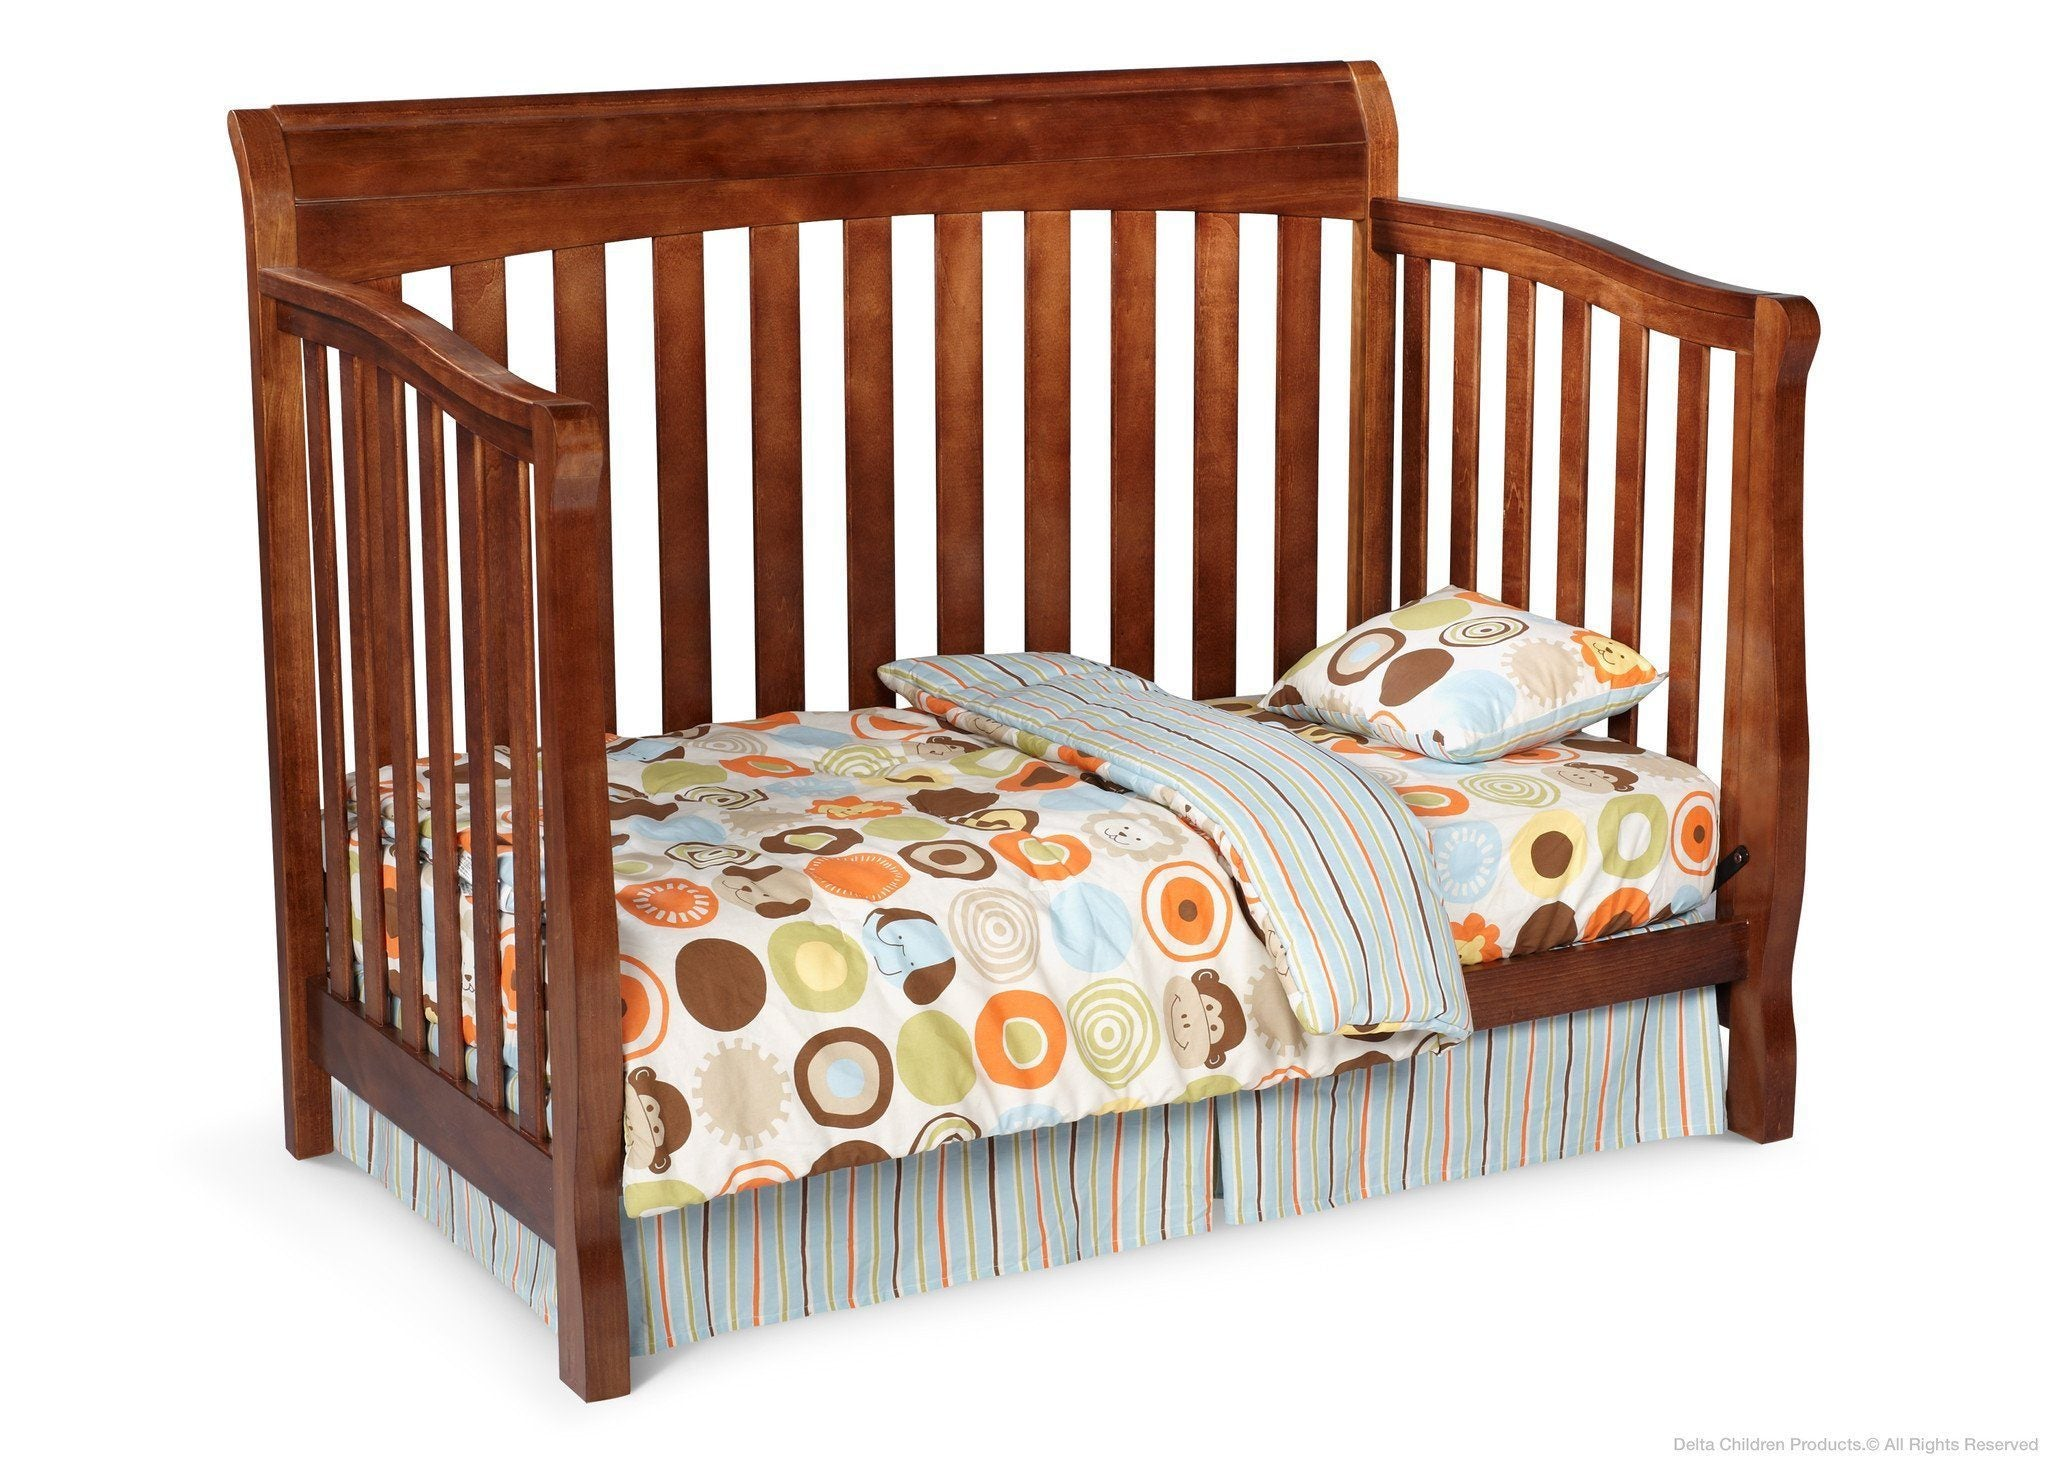 Delta Childrens Spiced Cinnamon (209) Eclipse 4-in-1 Toddler Bed Conversion b2b